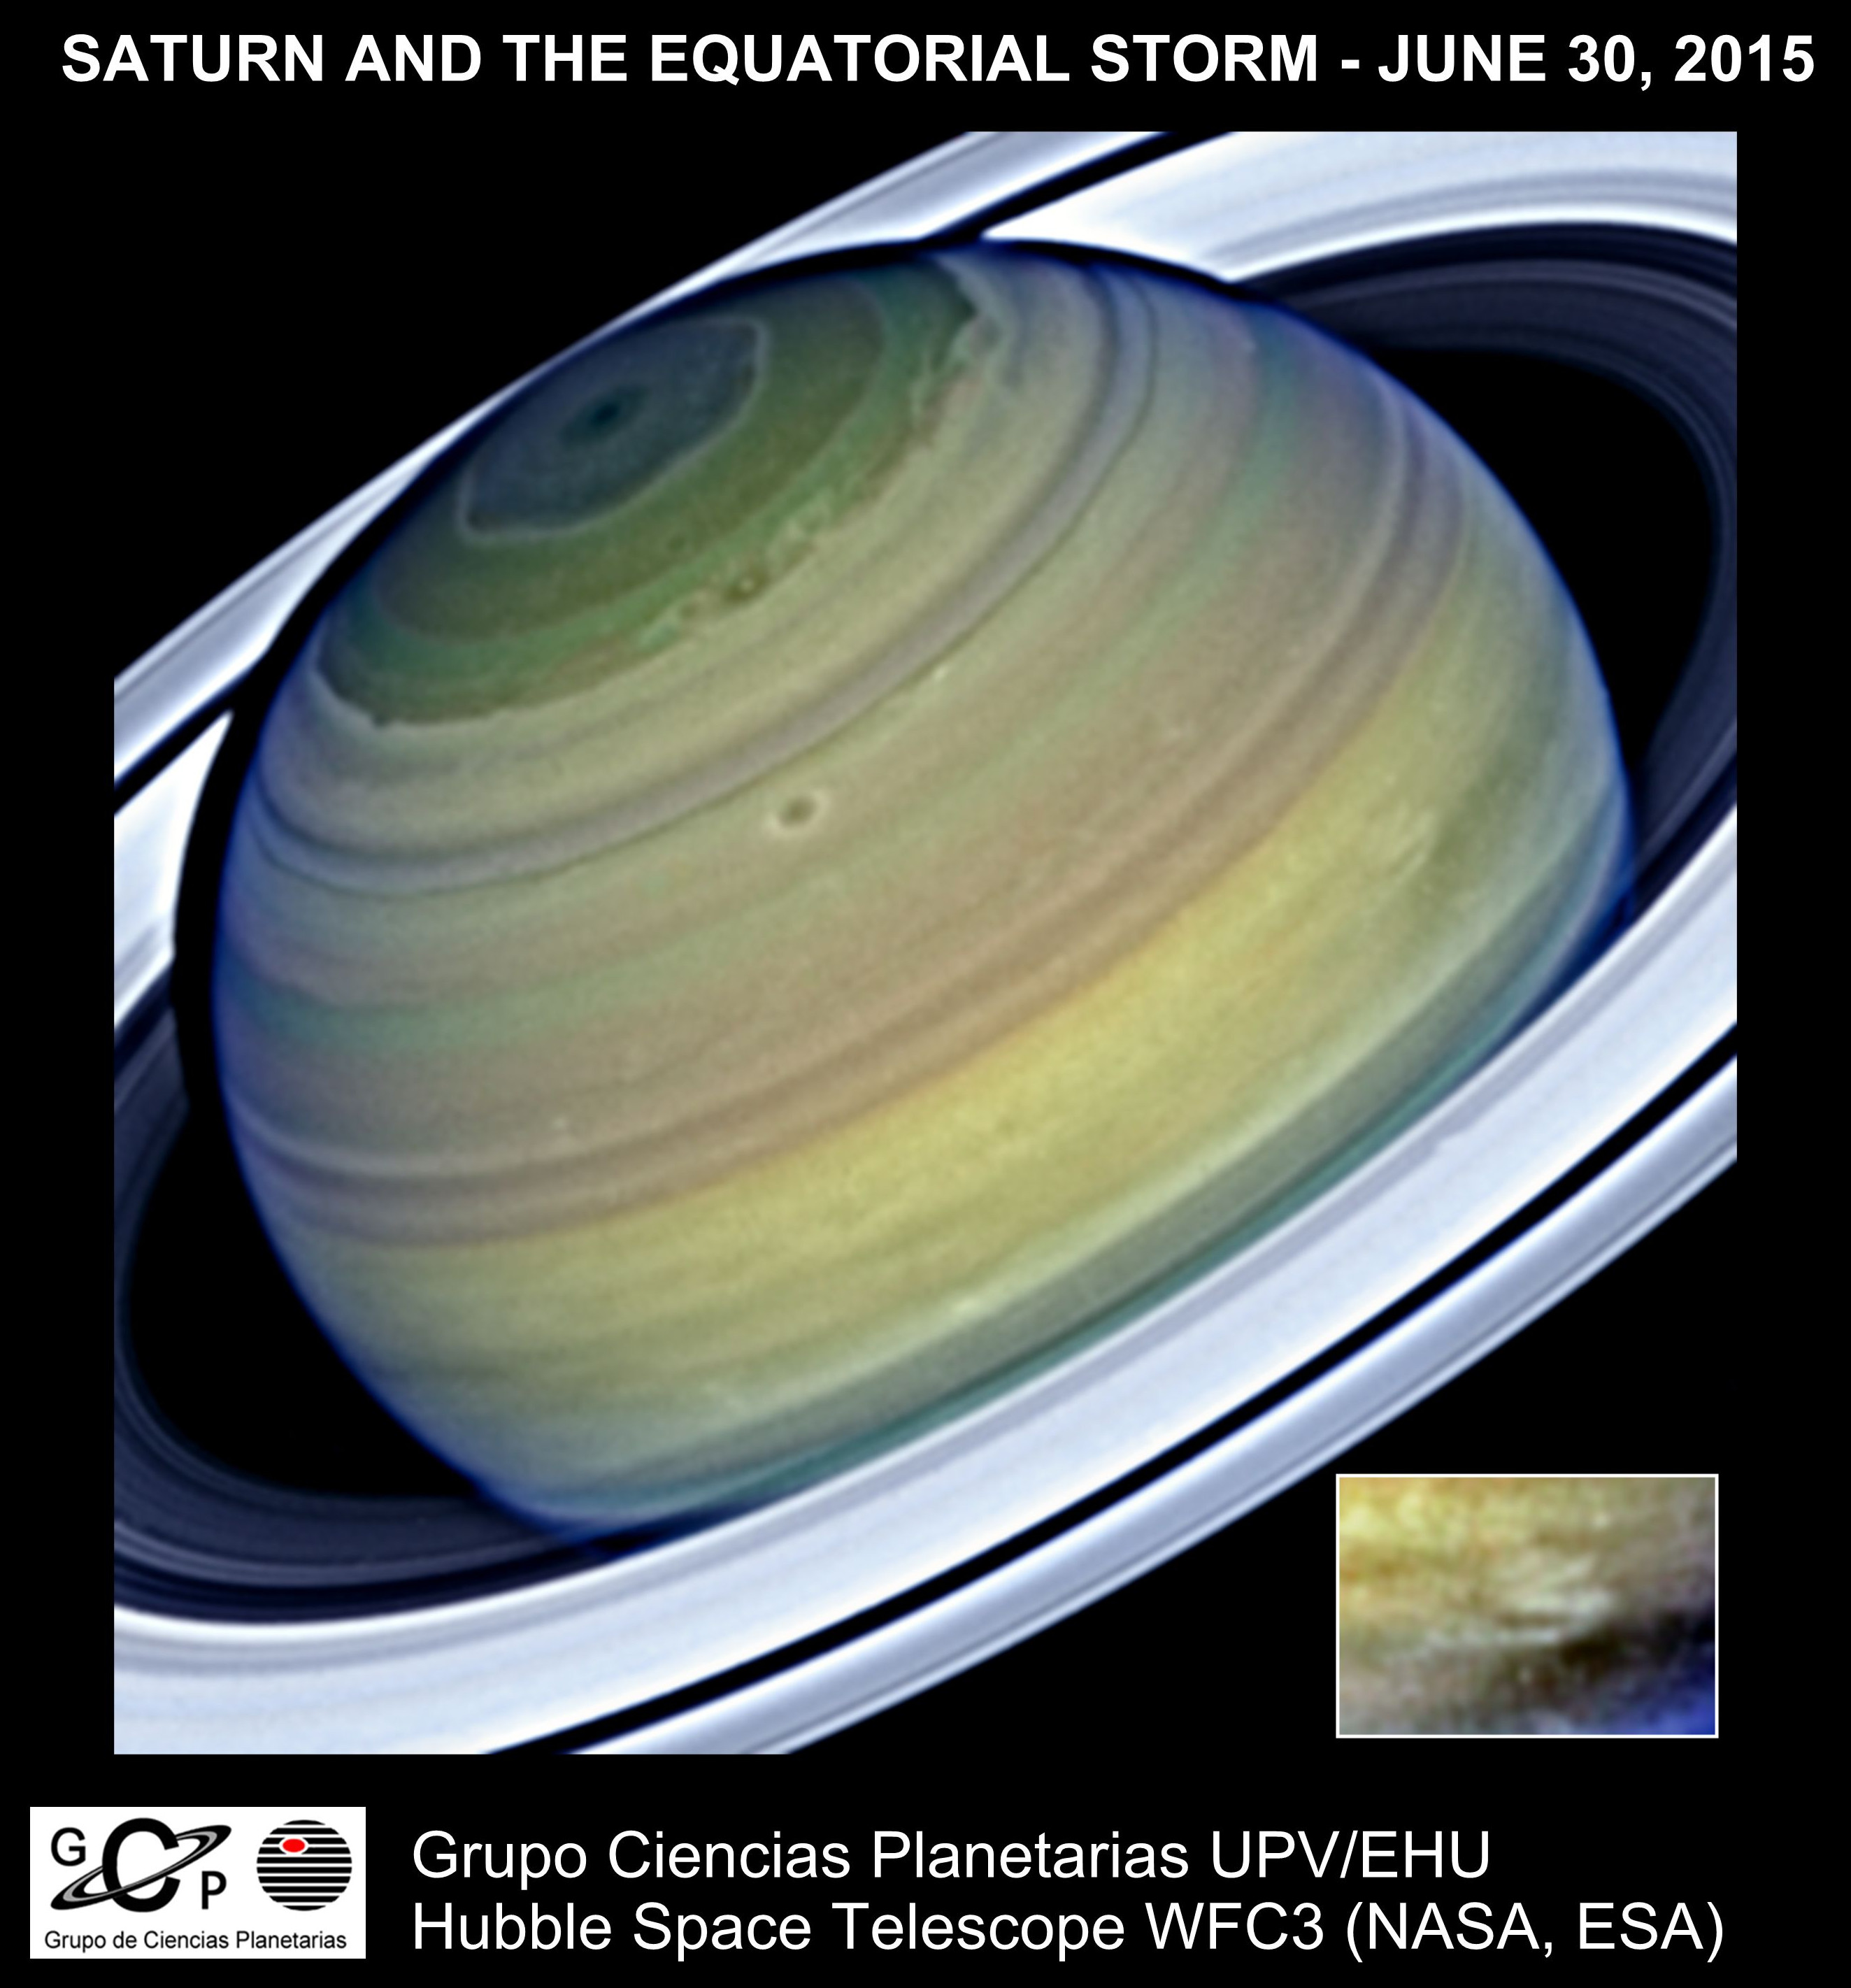 The planet Saturn observed using the Wide Field Camera 3 of the NASA/ESA Hubble Space Telescope on 30June 2015. The inset box shows the equatorial storm.